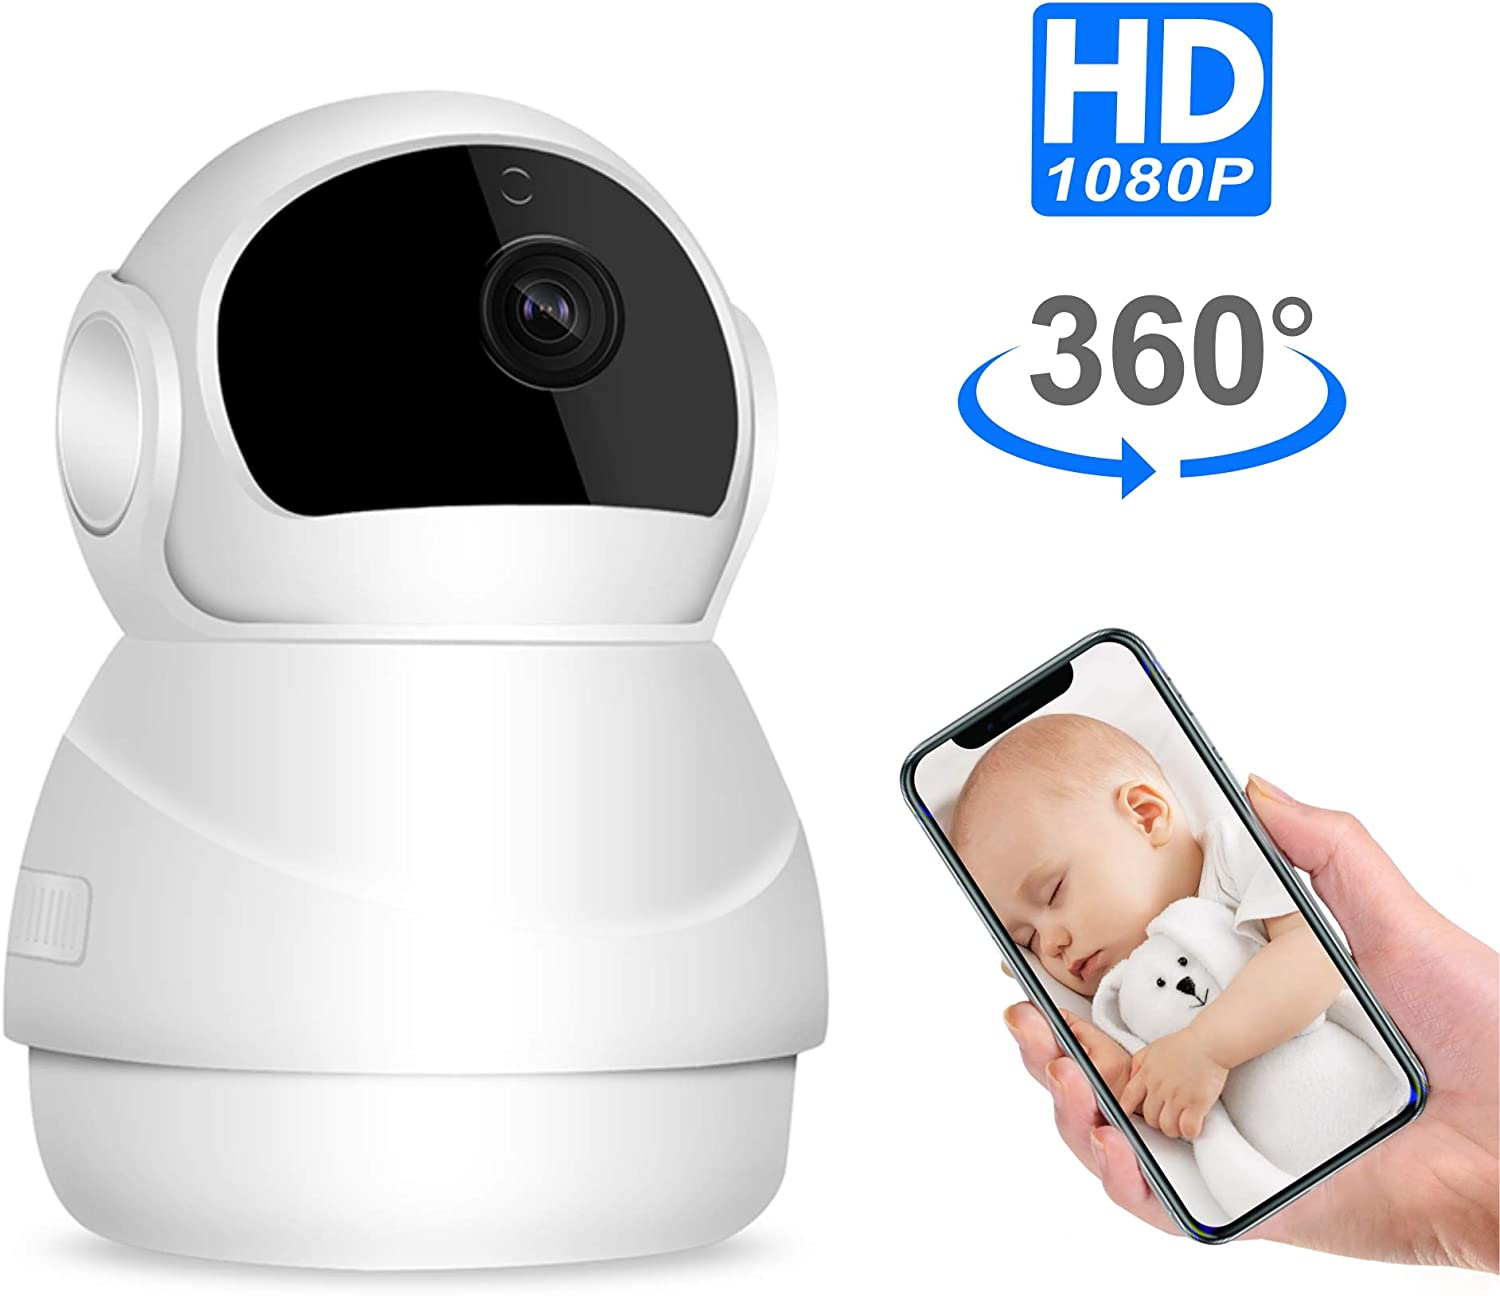 Pet Camera, Nanny Cam, Wireless IP Camera, WiFi 1080P HD Indoor Home Security Camera with Two Way Audio and Video, Night Vision Camera for Dog Cat Elder Baby Monitor, Pan Tilt Zoom Function